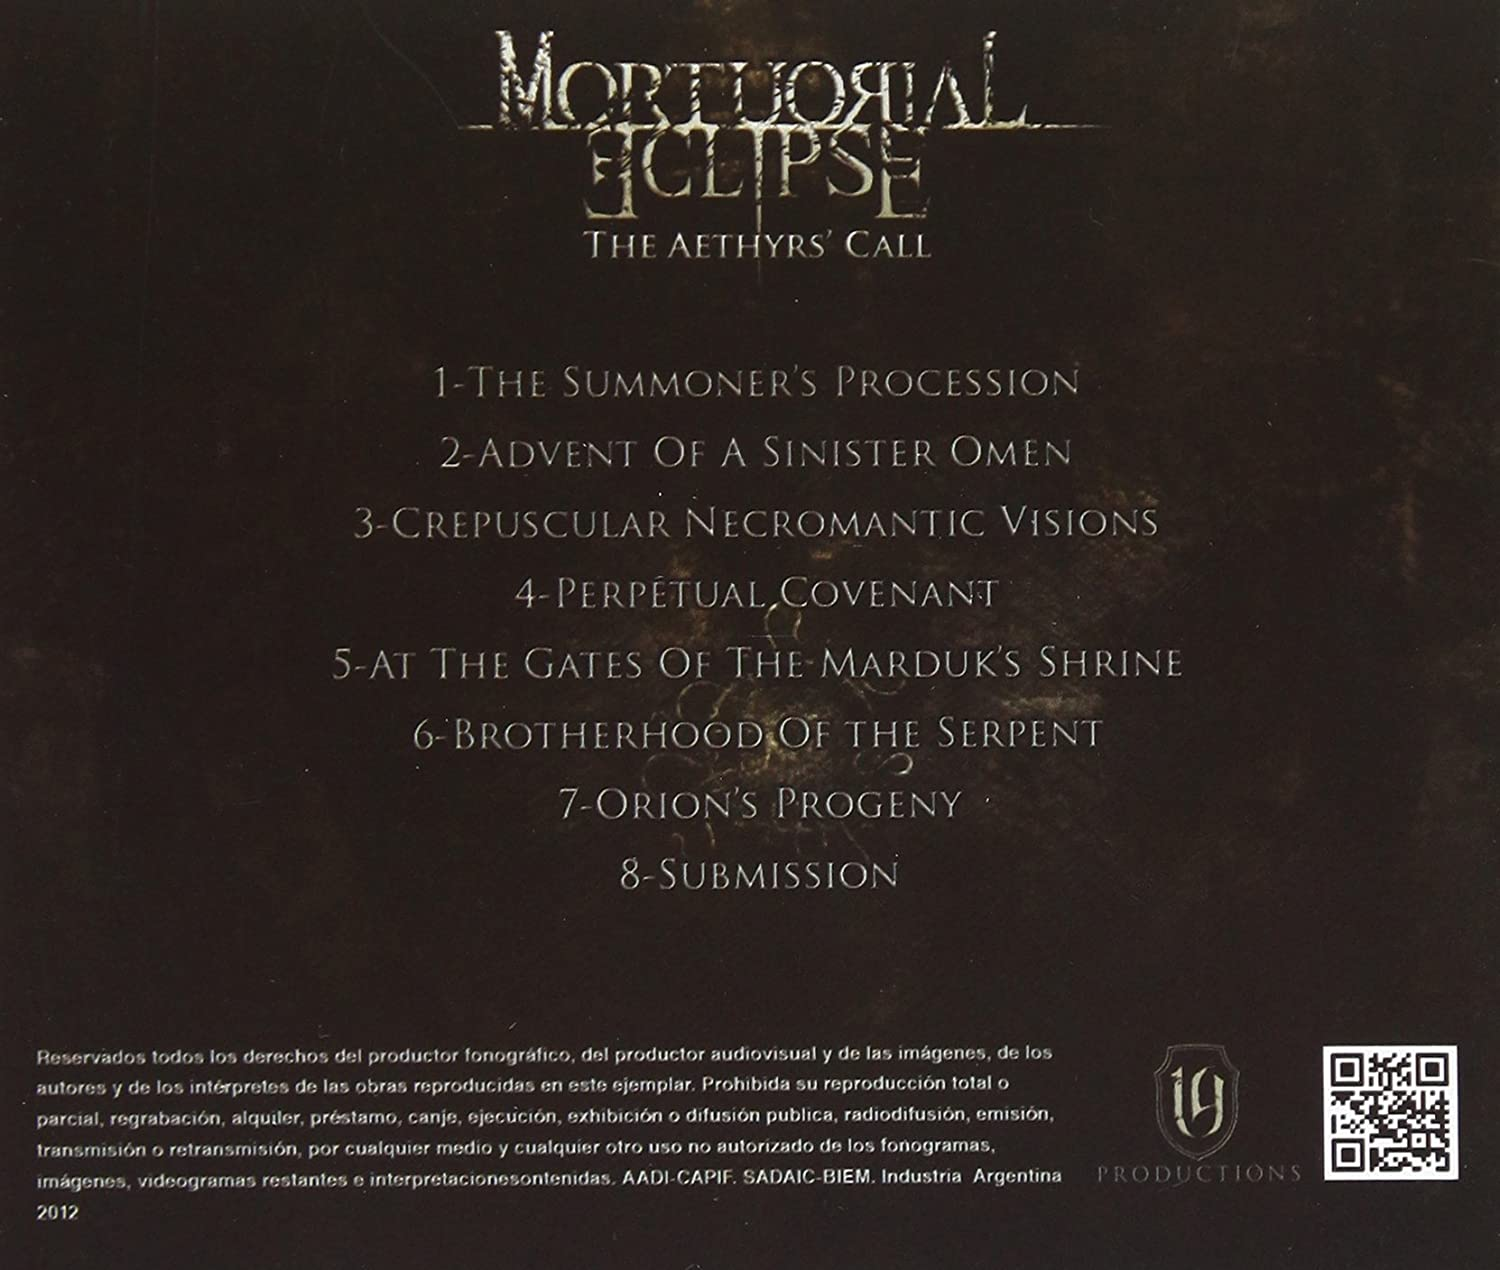 The Aethyrs Call: Mortuorial Eclipse: Amazon.es: Música